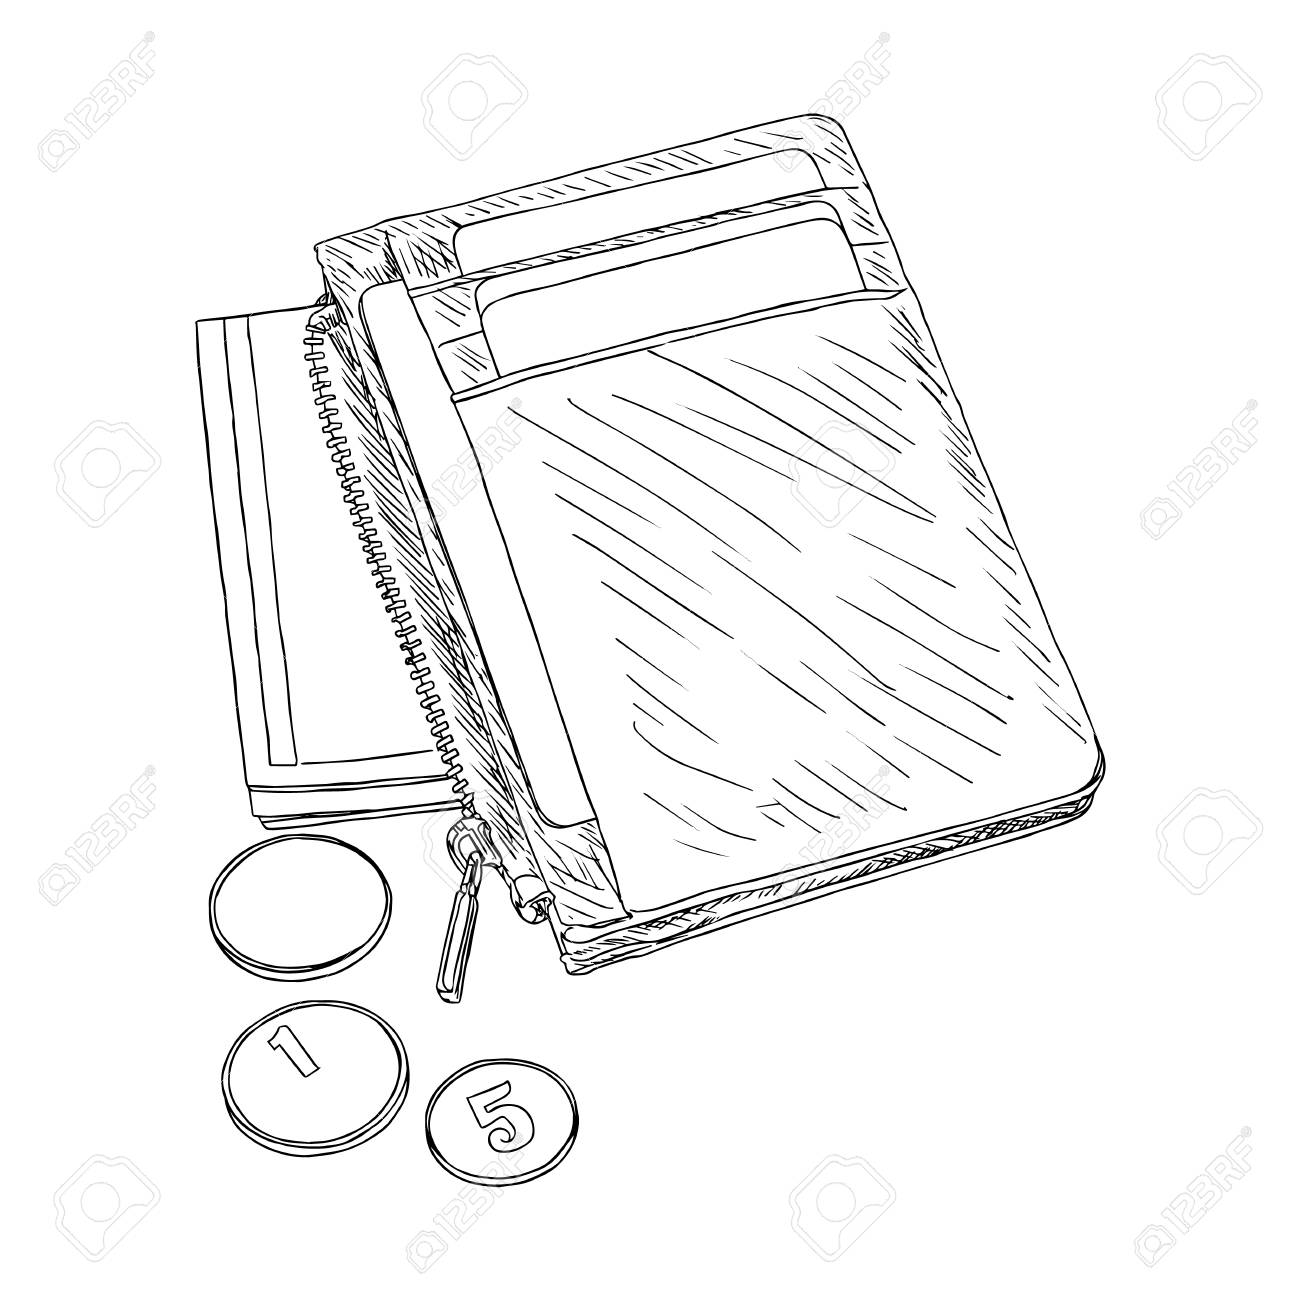 1300x1300 Wallet With Money And Credit Cards Sketch Of Wallet Full Of Cash